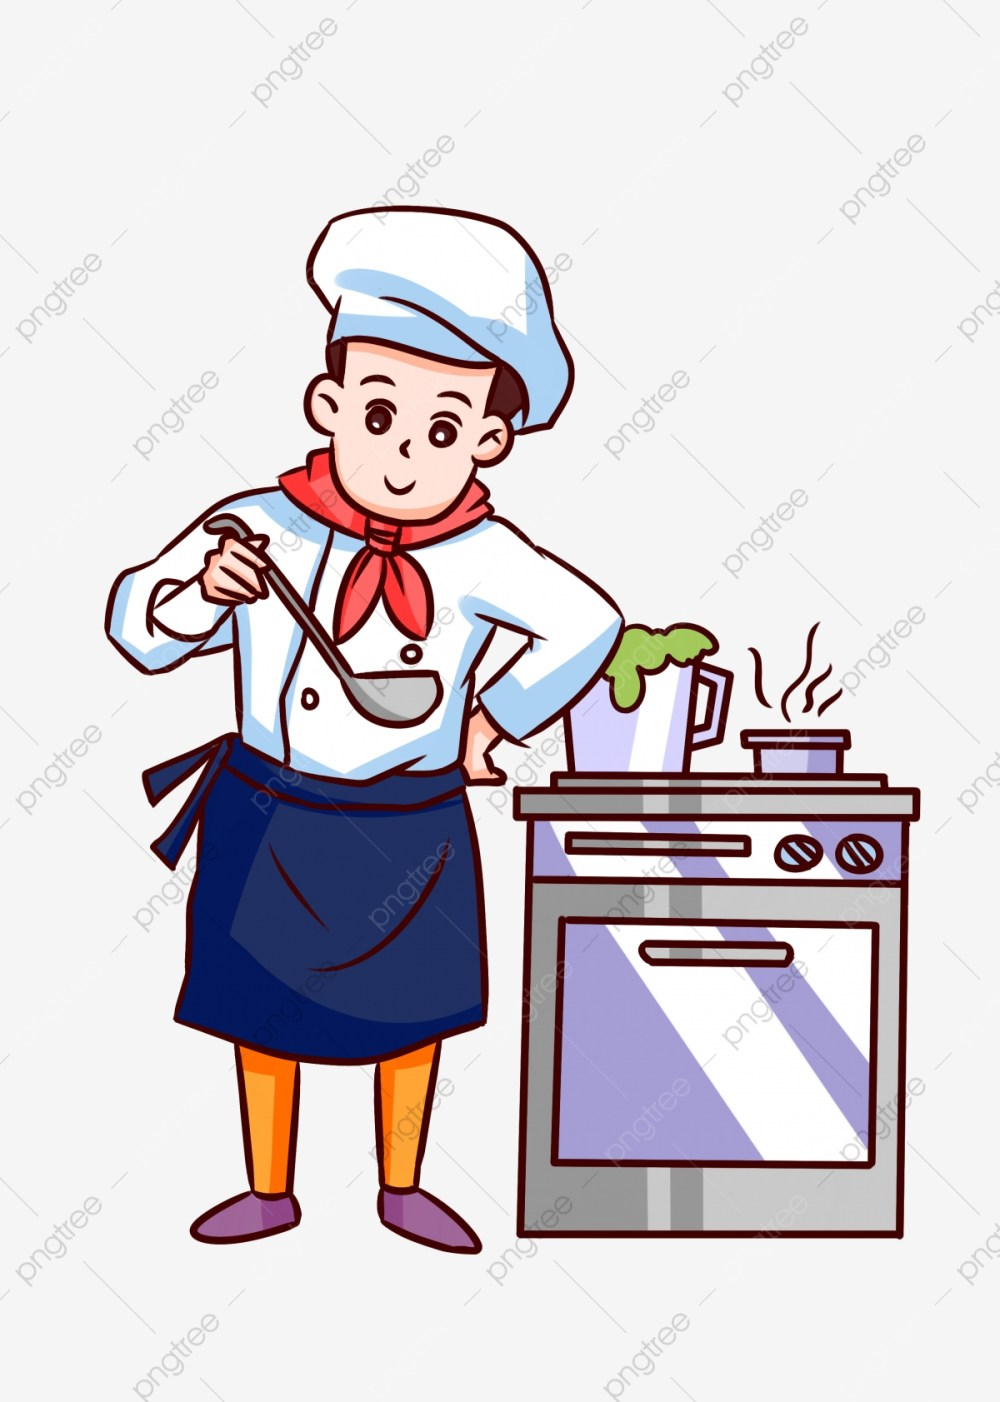 medium resolution of commercial use resource upgrade to premium plan and get license authorization upgradenow woman cooking woman clipart